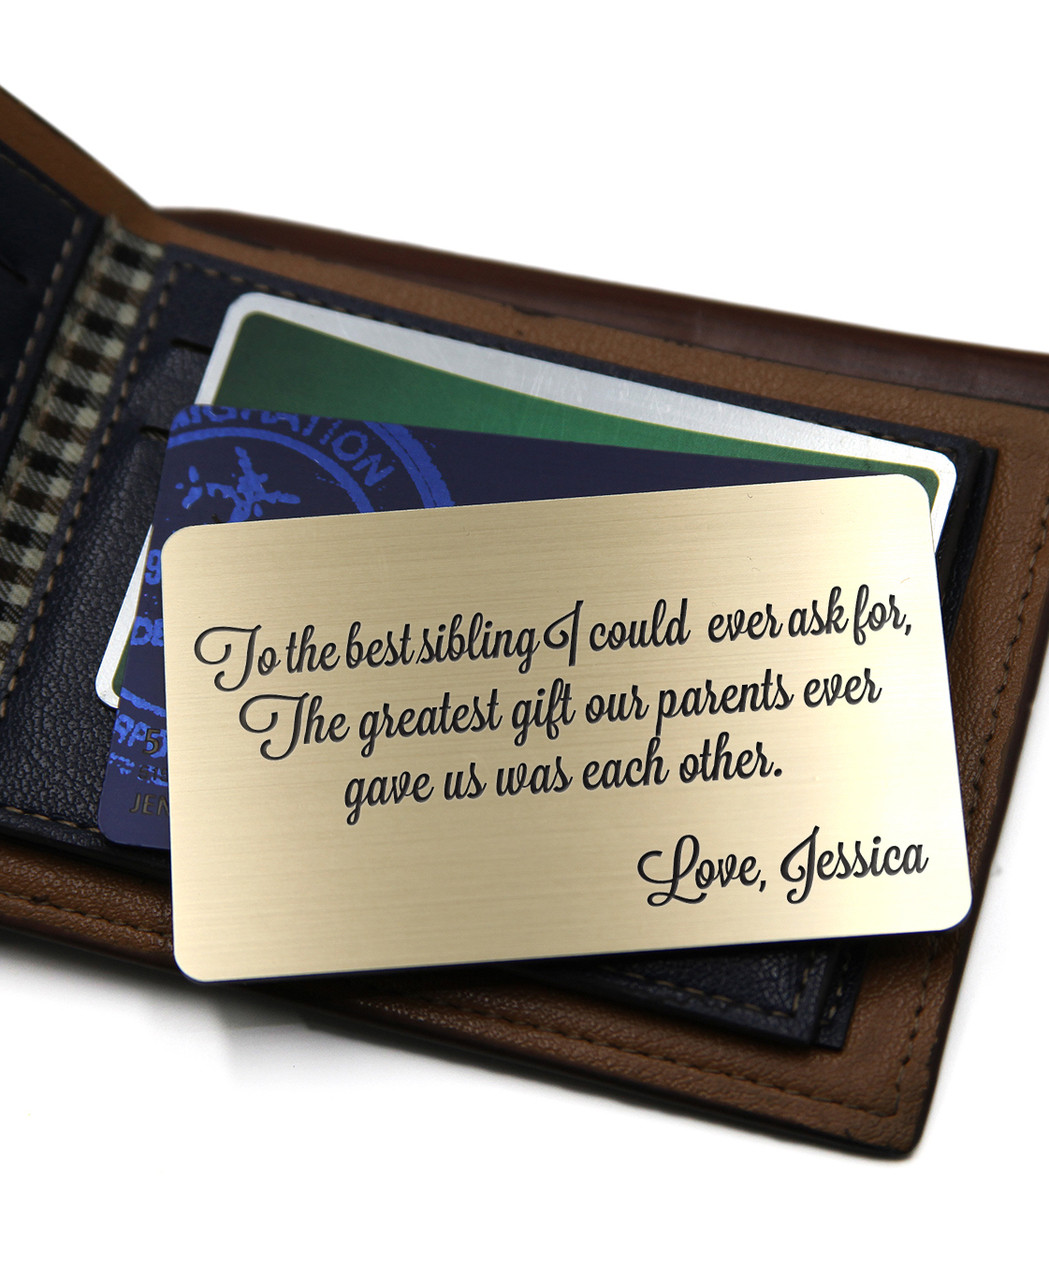 Grpn UK - Personalized Wallet Card - To the Best Sibling